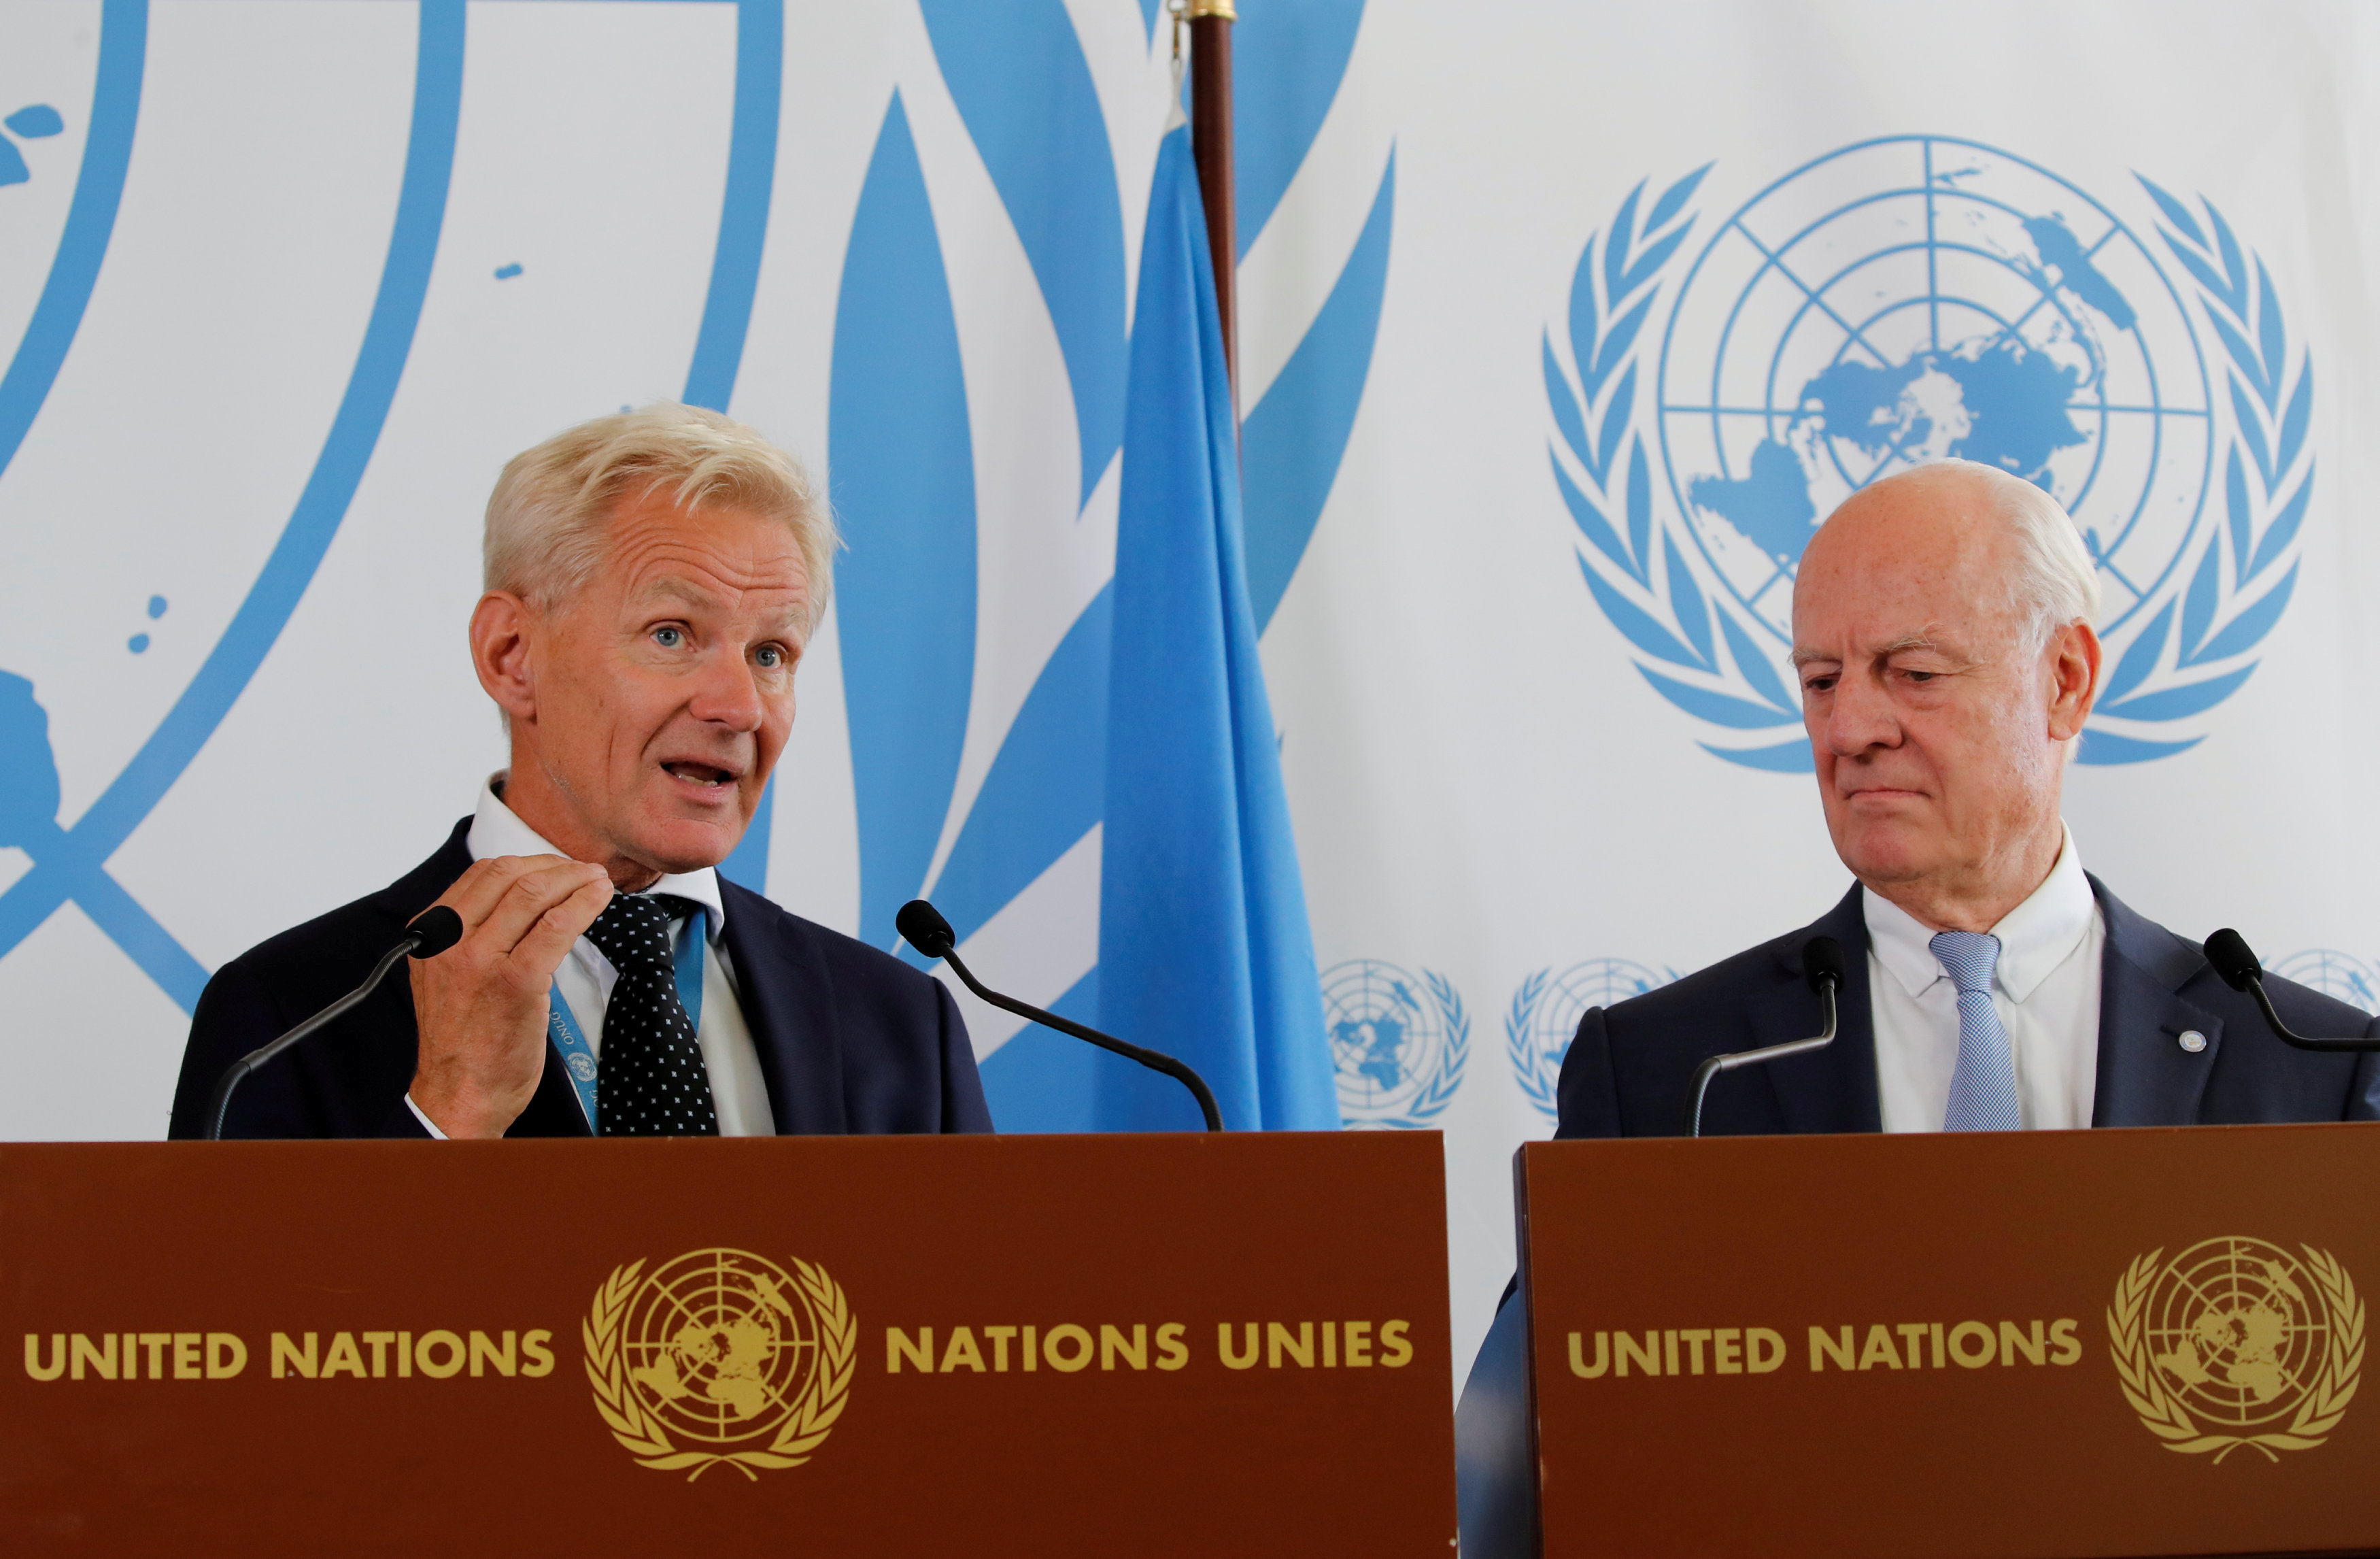 Jan Egeland (L), Special Advisor to the United Nations Special Envoy for Syria, and Staffan de Mistura, U.N. Syria Envoy, attend a news conference at the U.N. in Geneva, Switzerland September 4, 2018. REUTERS/Denis Balibouse